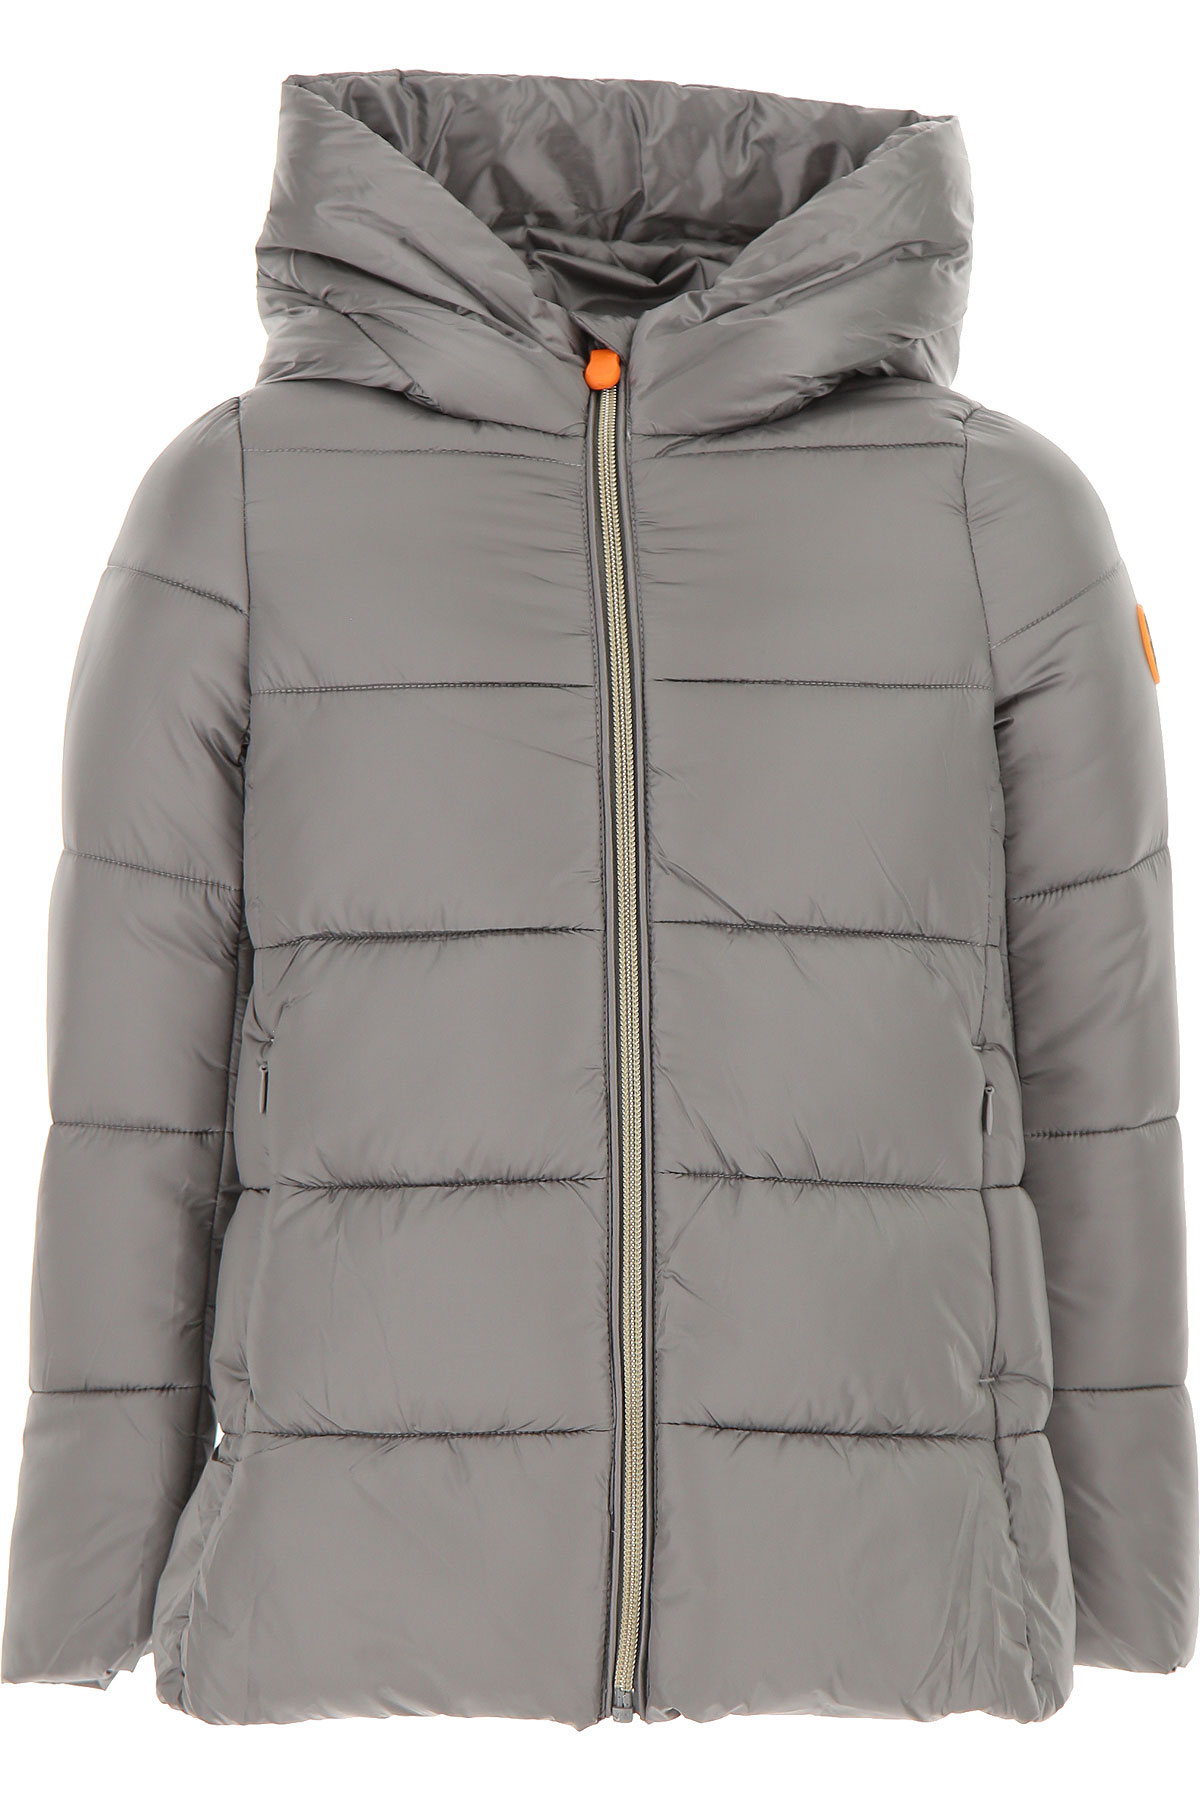 Save the Duck Girls Down Jacket for Kids, Puffer Ski Jacket On Sale, Mid Grey, Nylon, 2019, 10Y 14Y 2Y